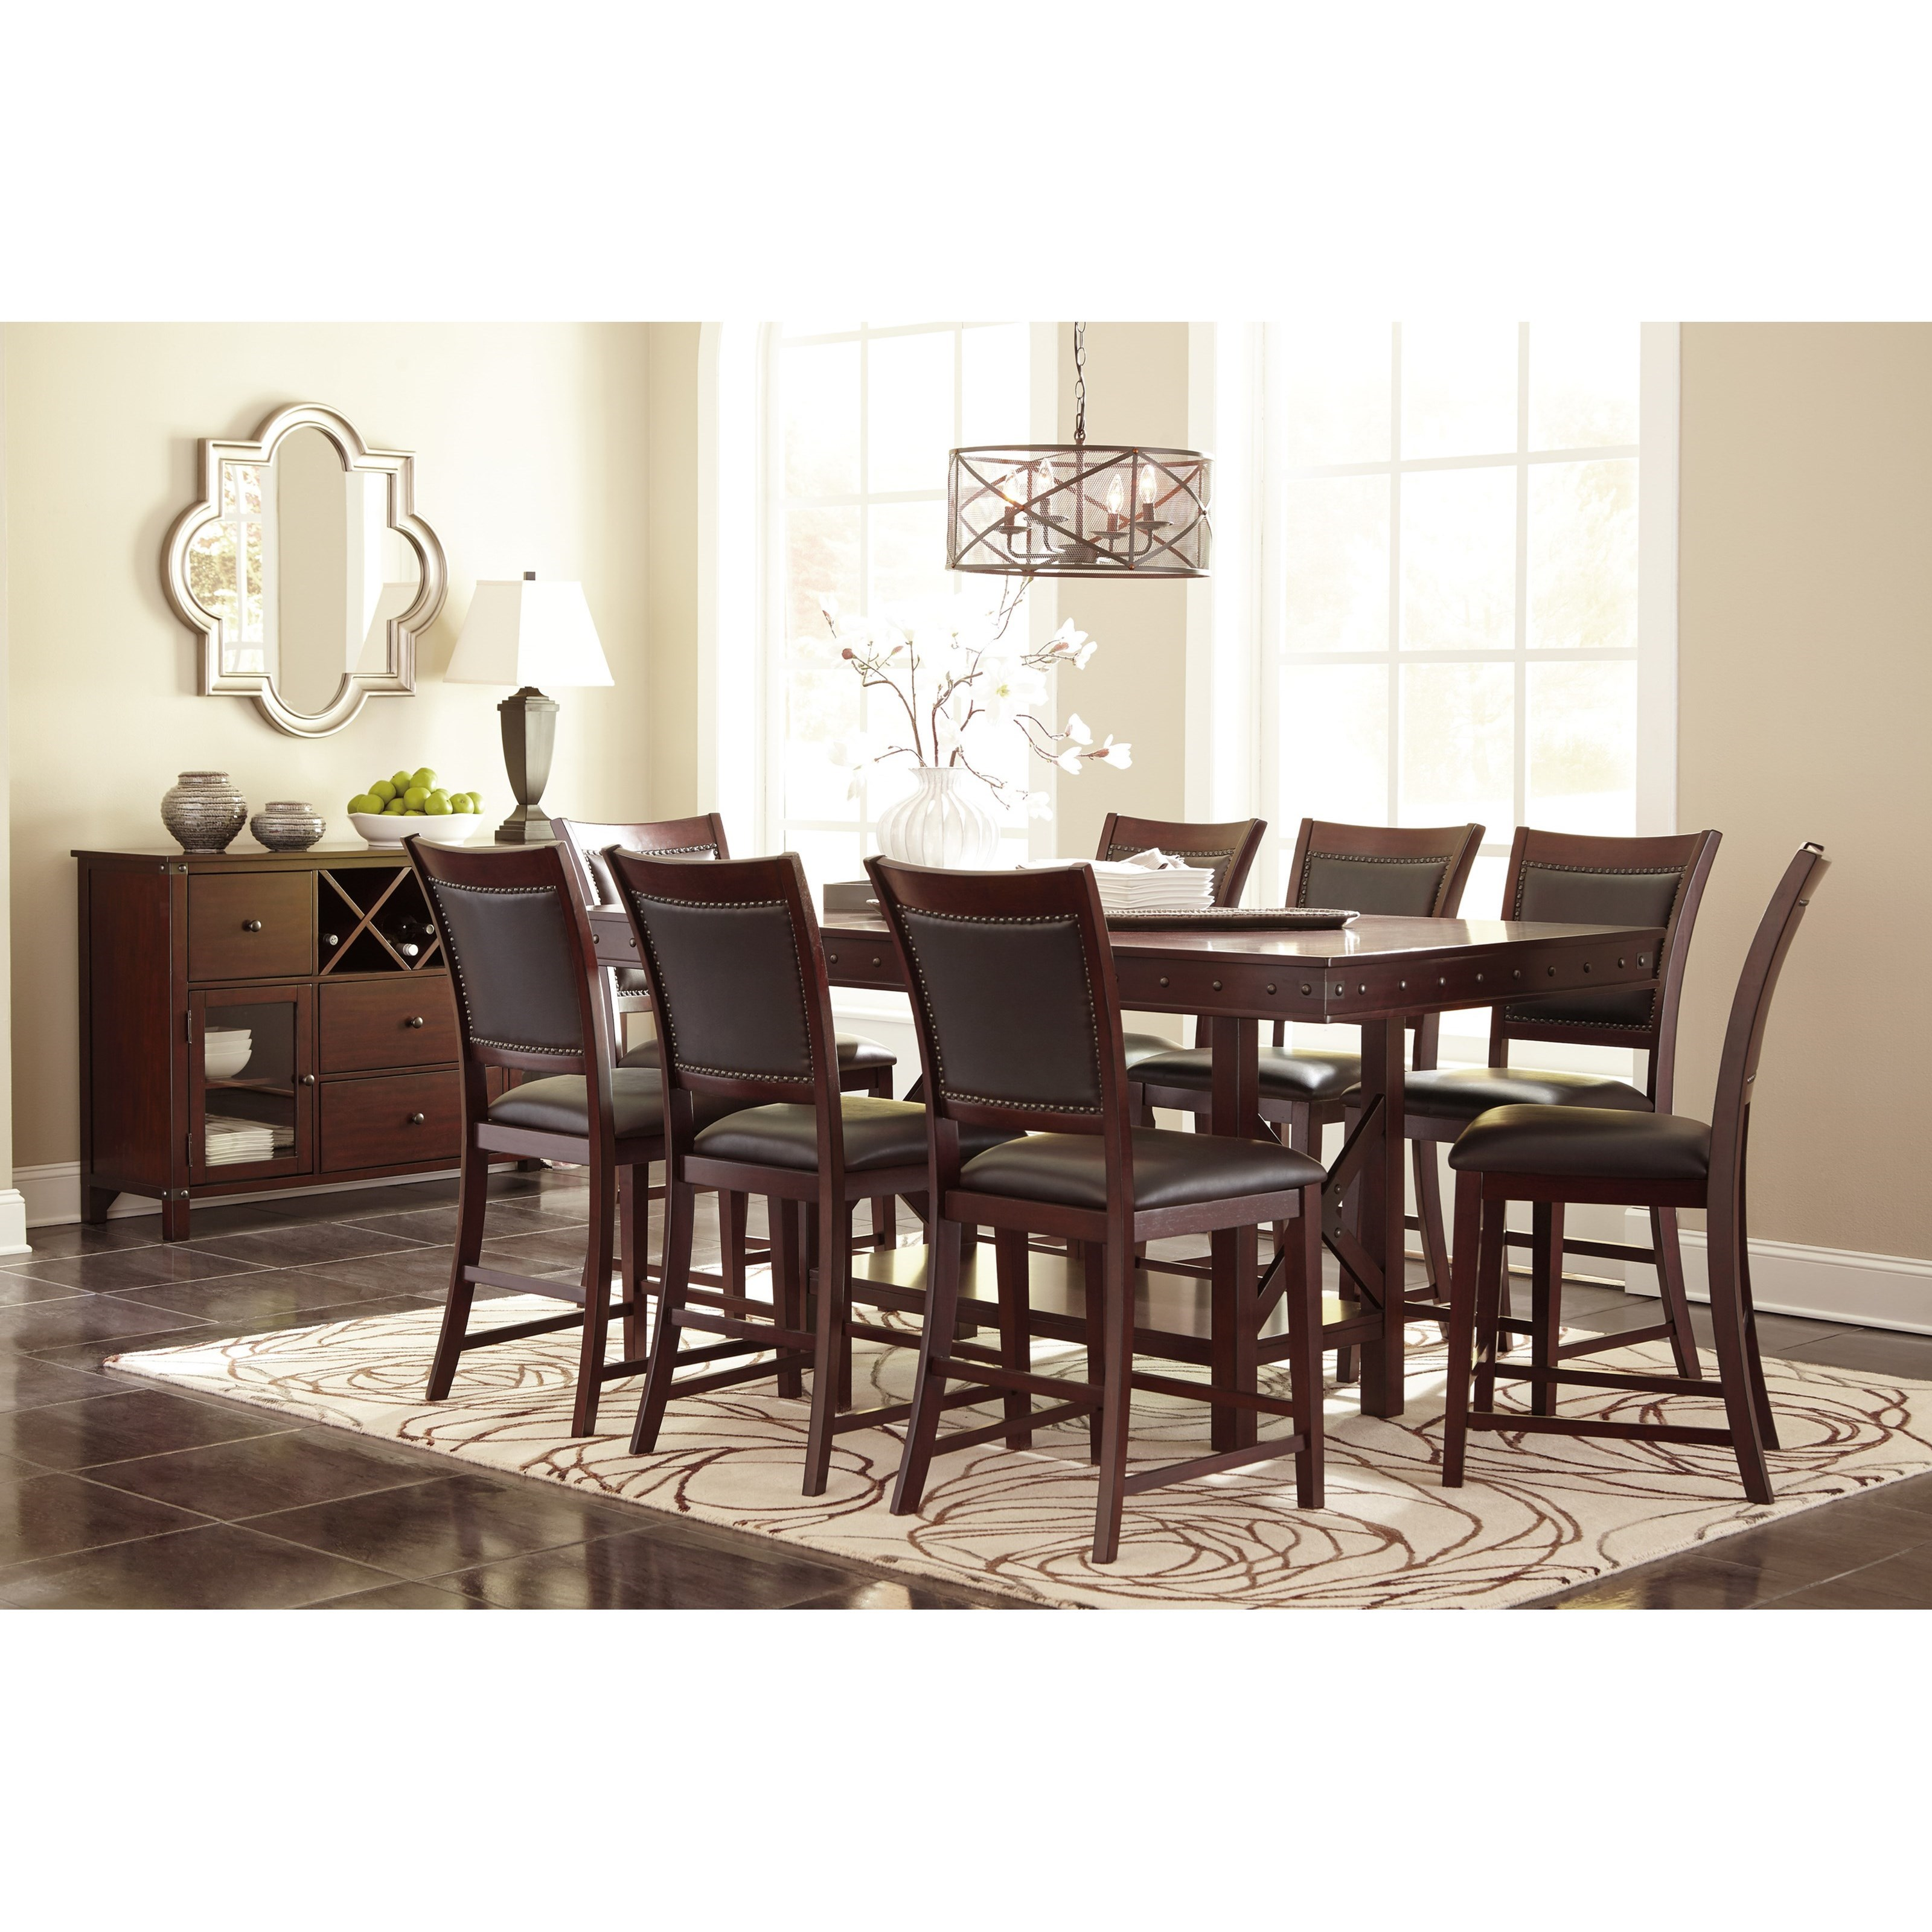 Signature Design By Ashley Collenburg Rectangular Dining Counter Extension Table Miskelly